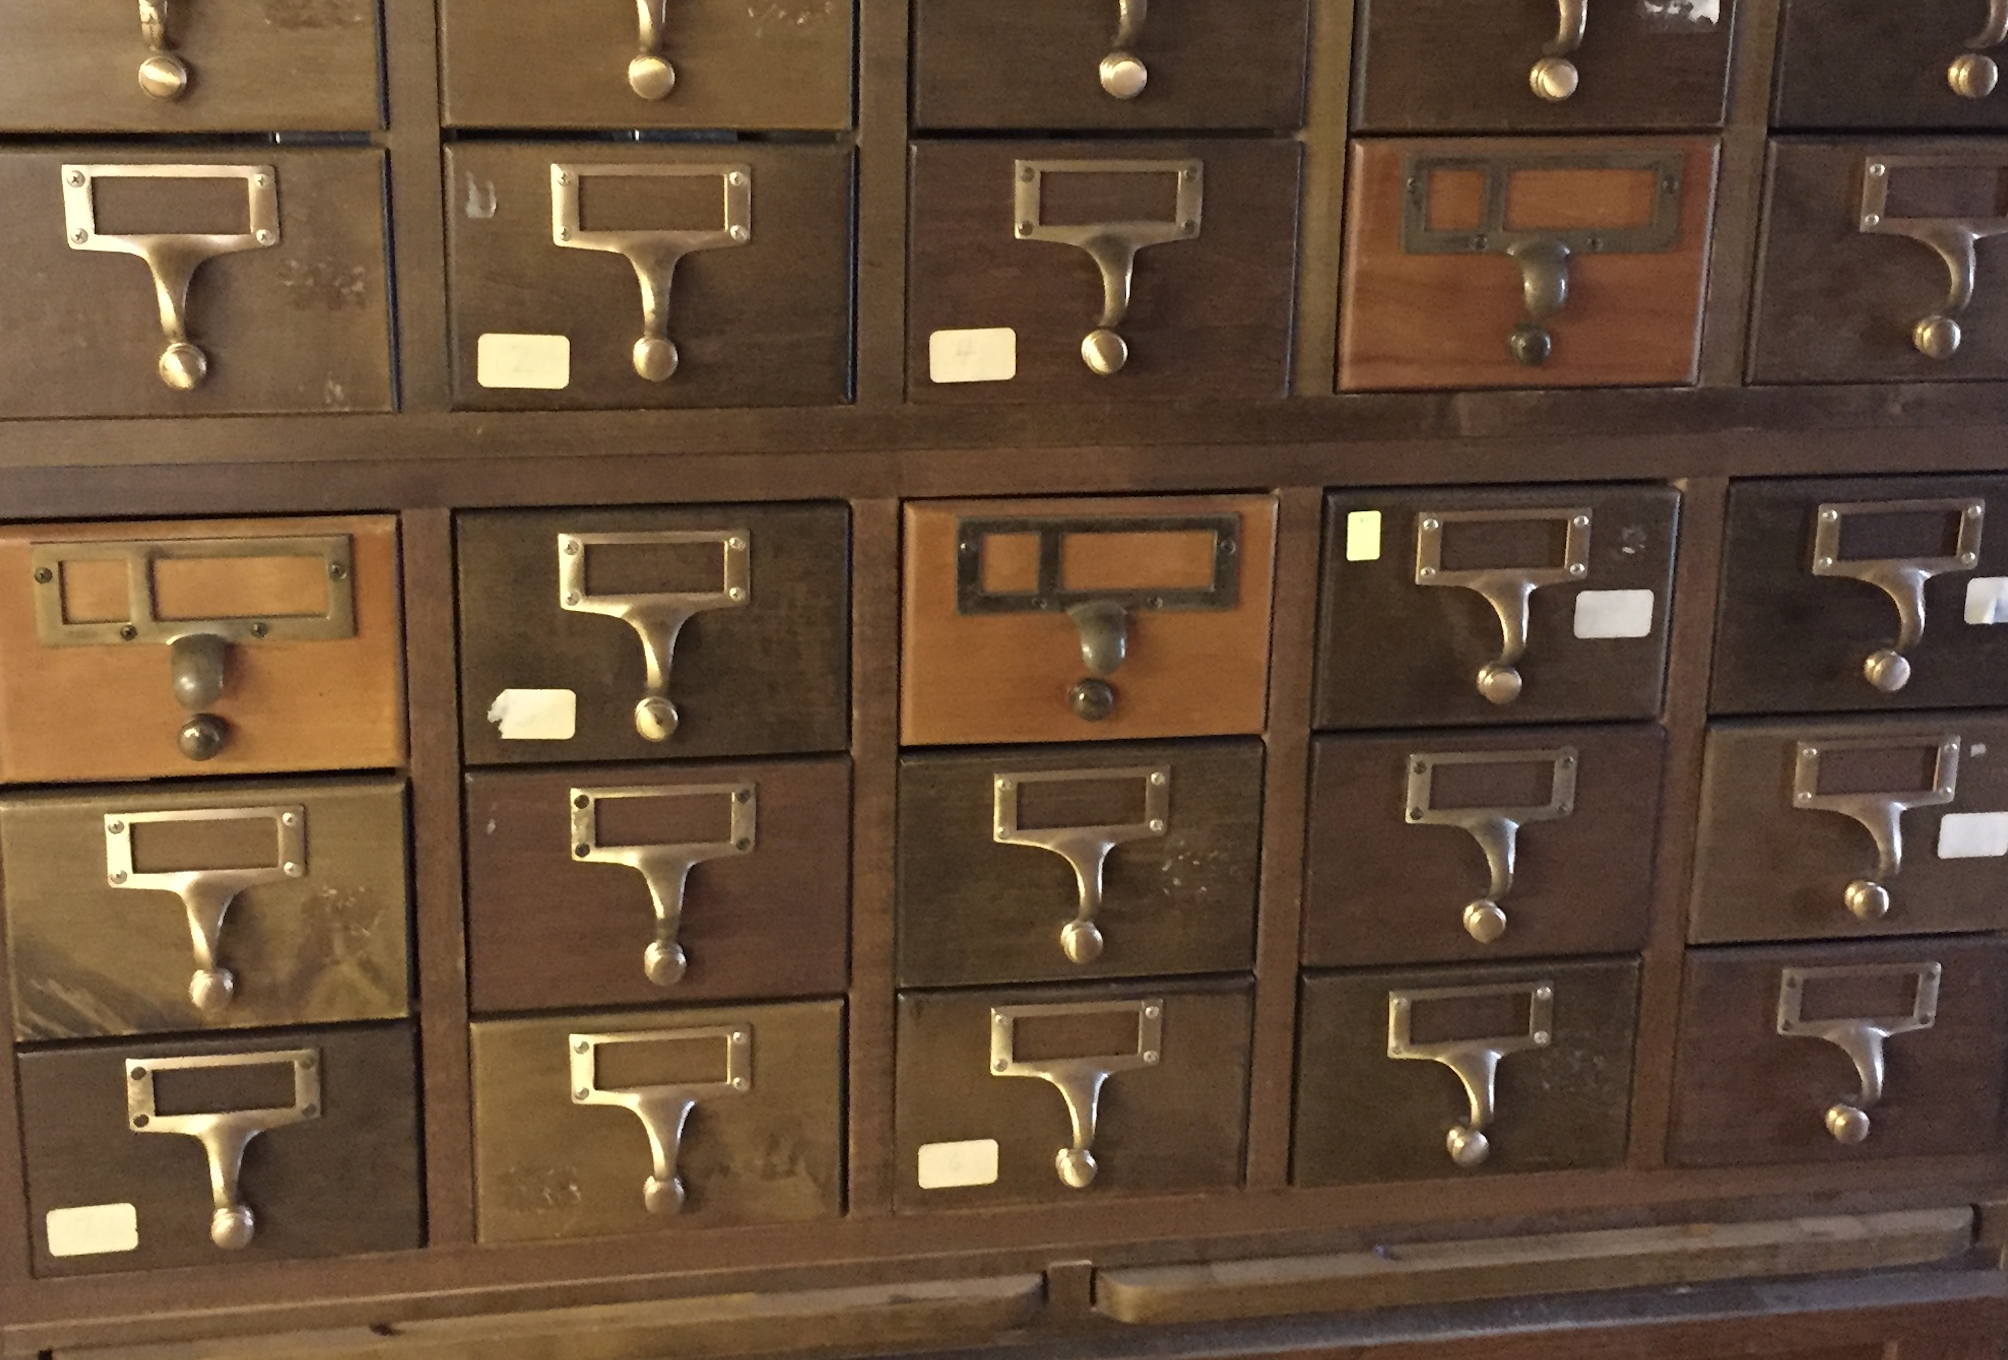 Old card catalog, currently in storage